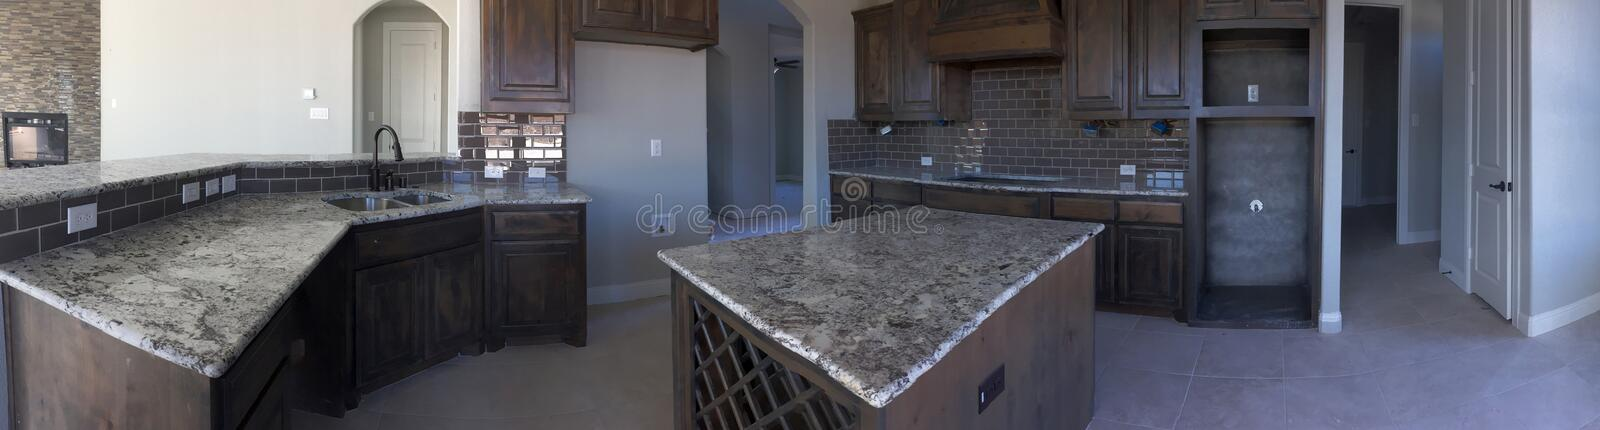 New kitchen with island counter under construction royalty free stock images